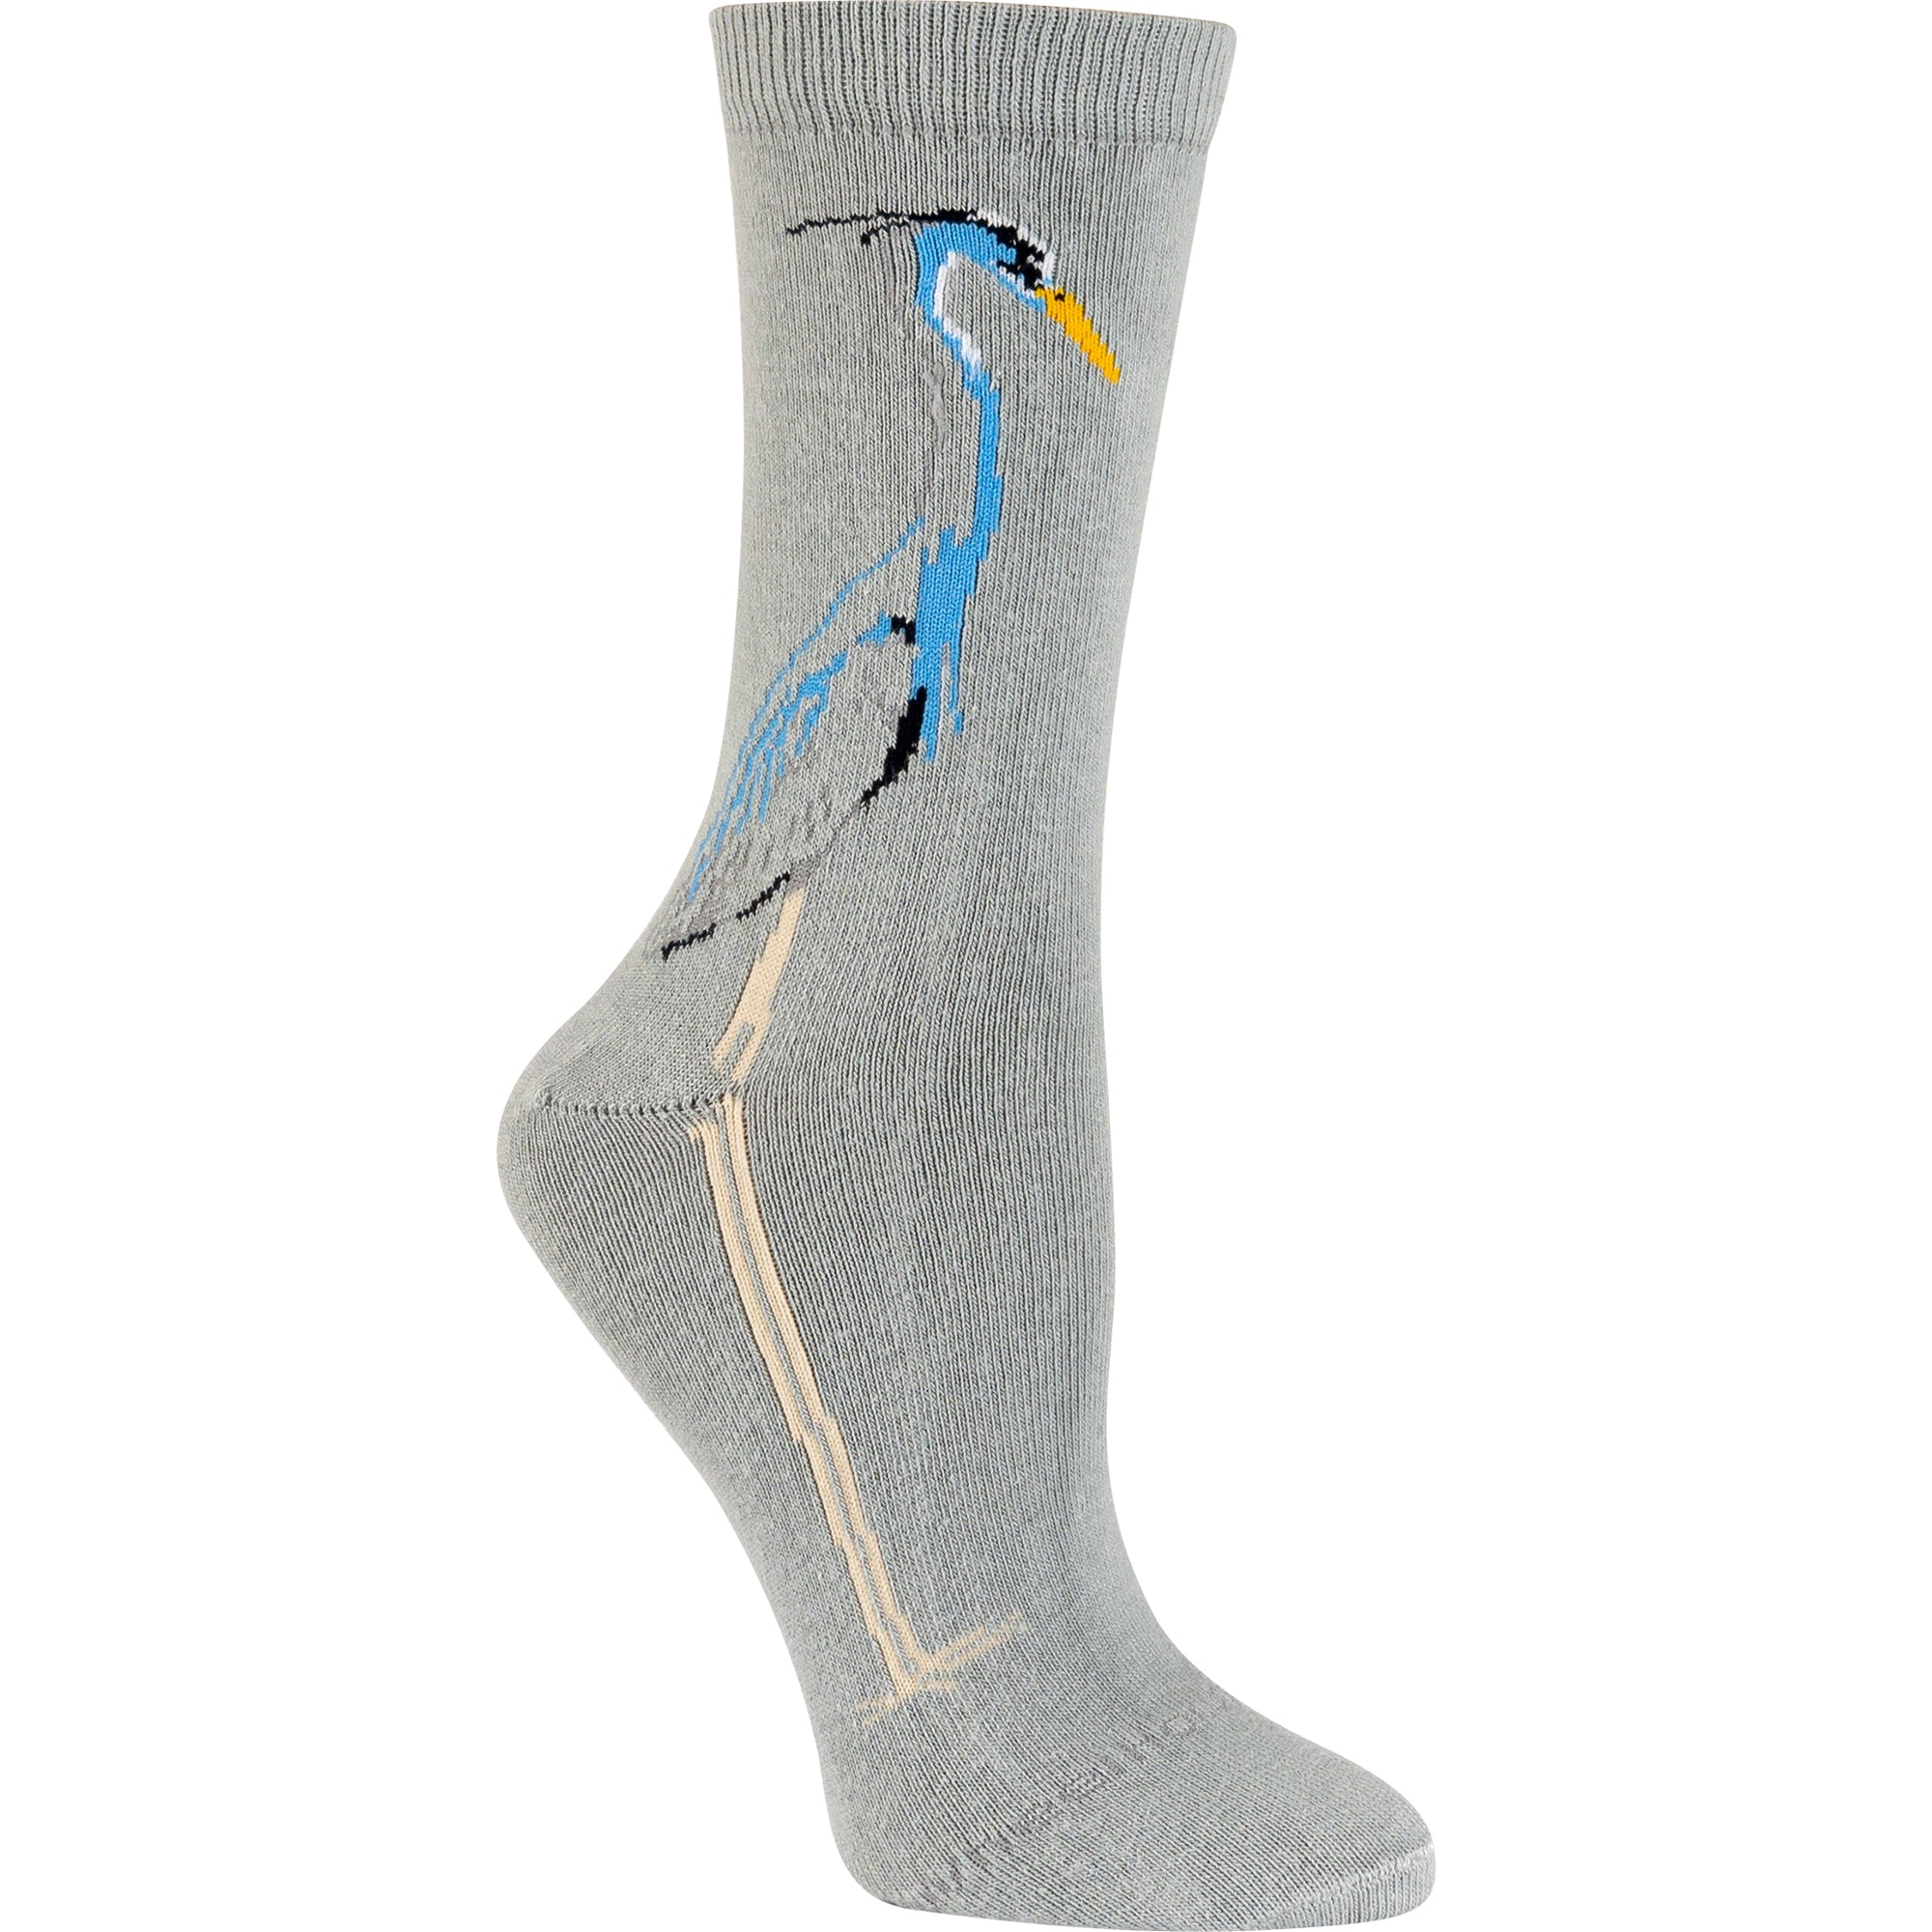 Blue Heron Crew Socks on Gray